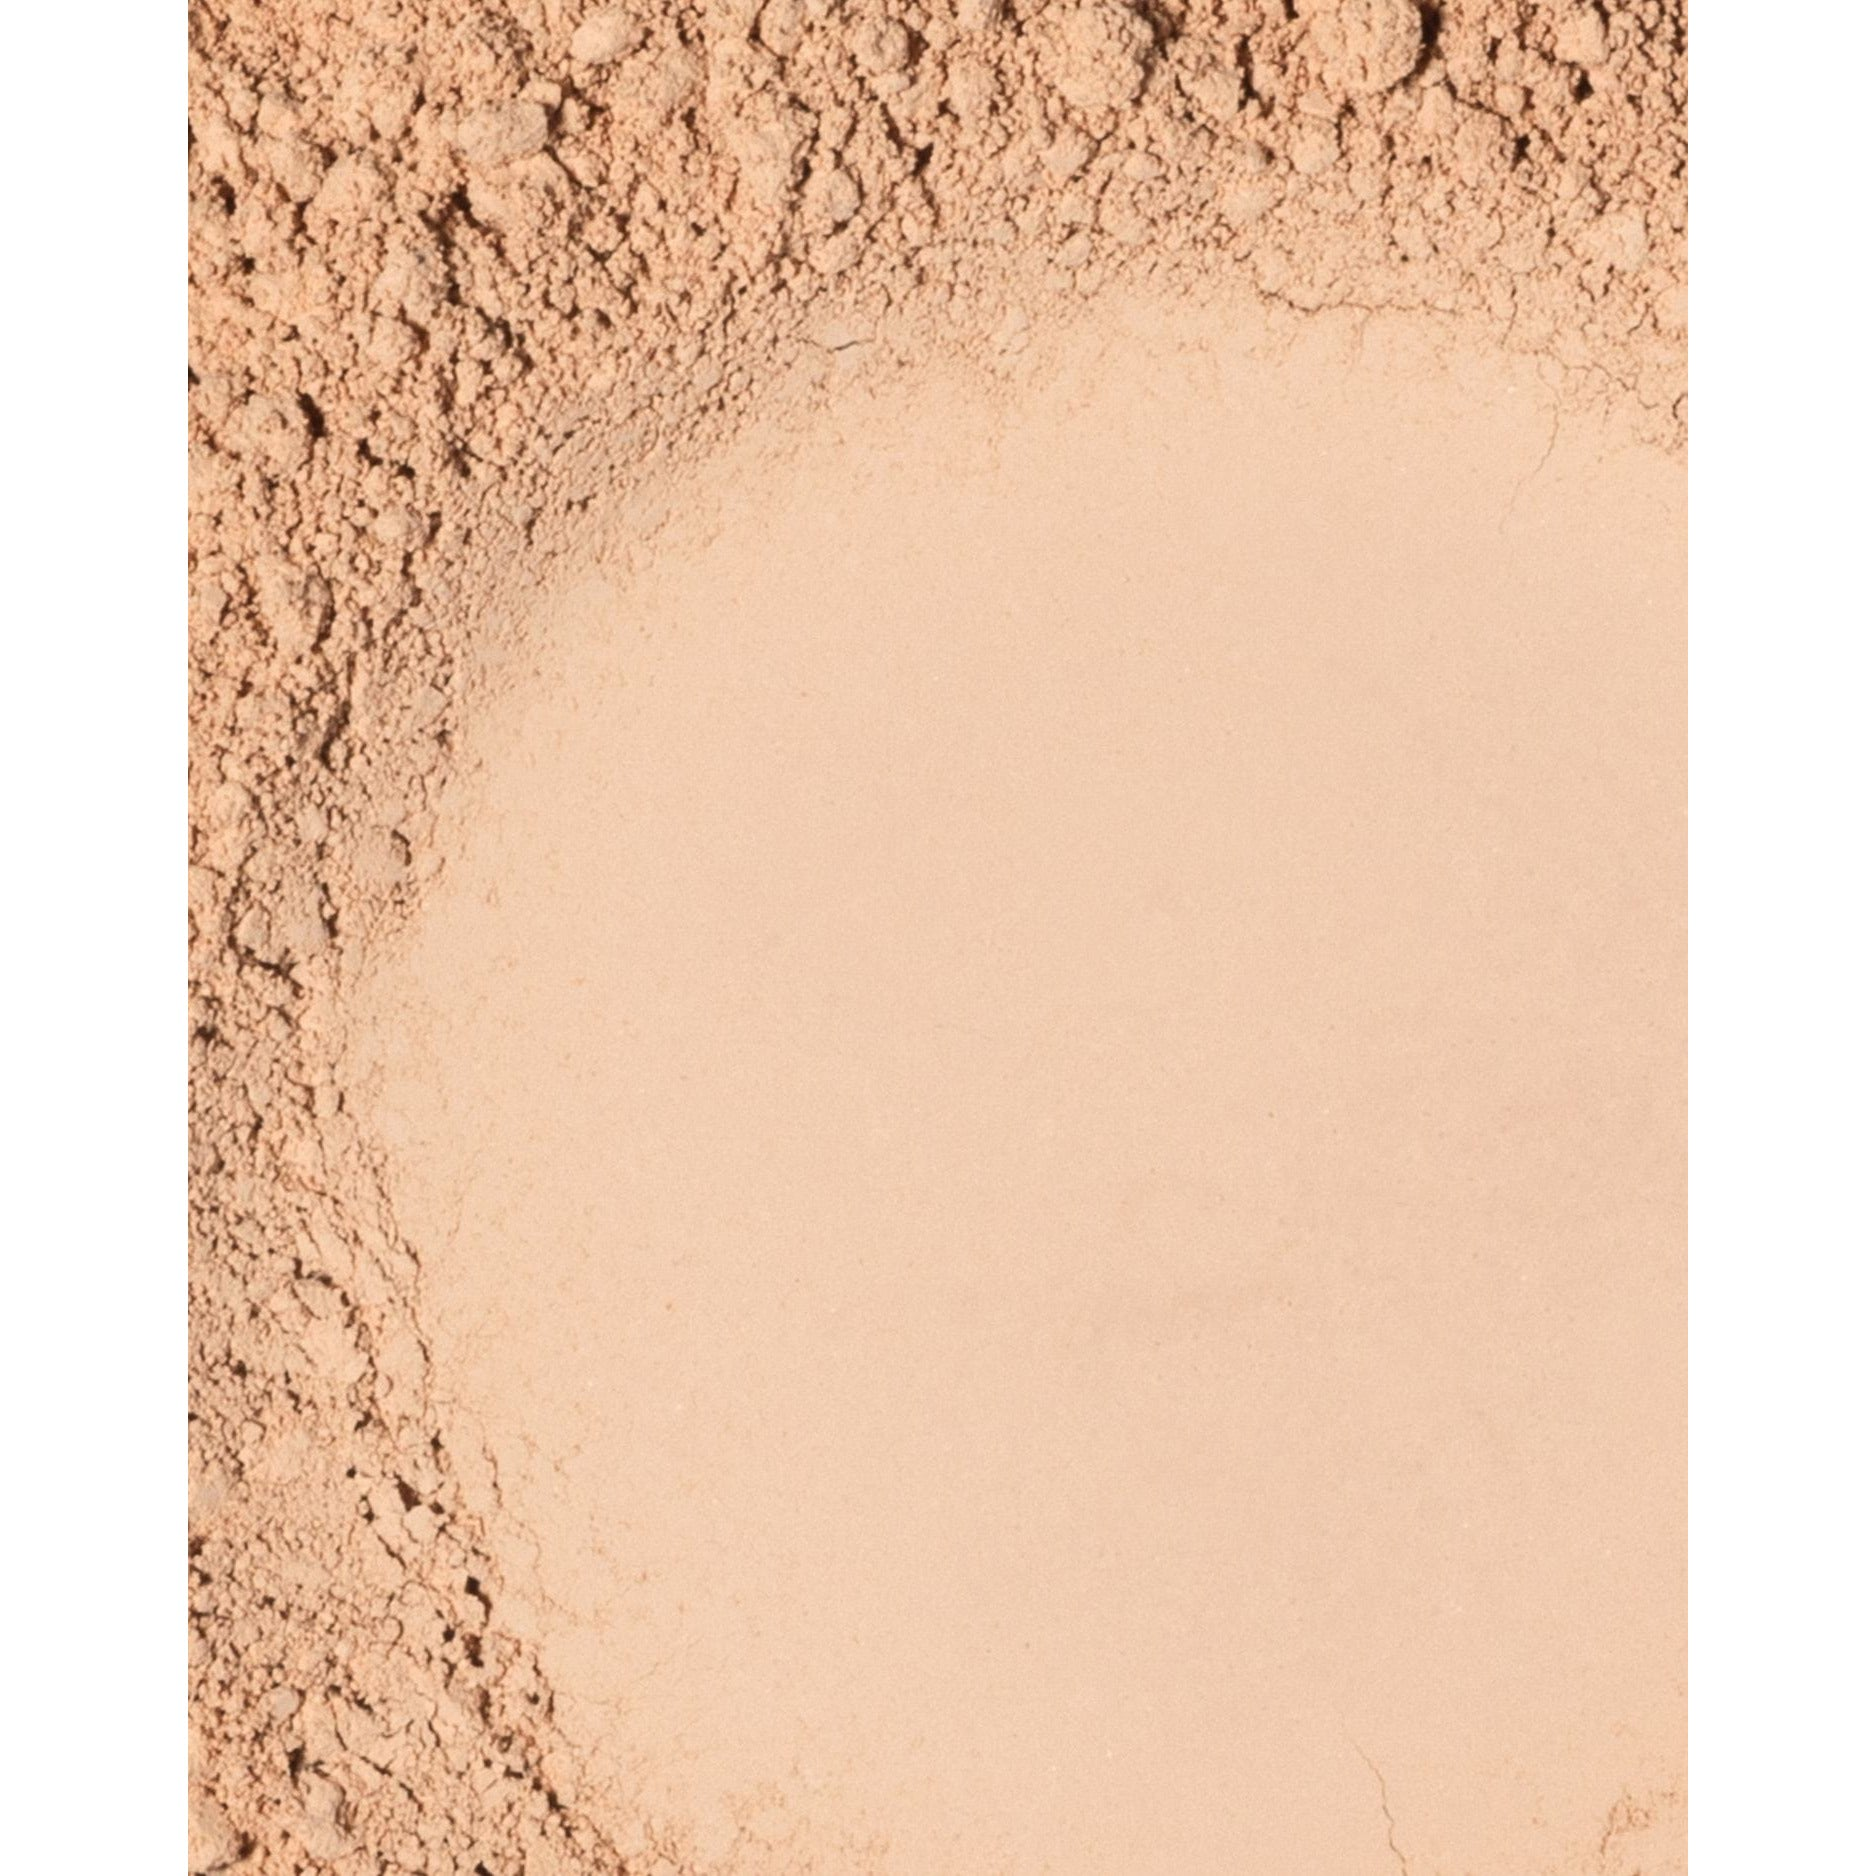 Hopeful - Omiana Loose Powder Mineral Foundation No Titanium Dioxide and No Mica